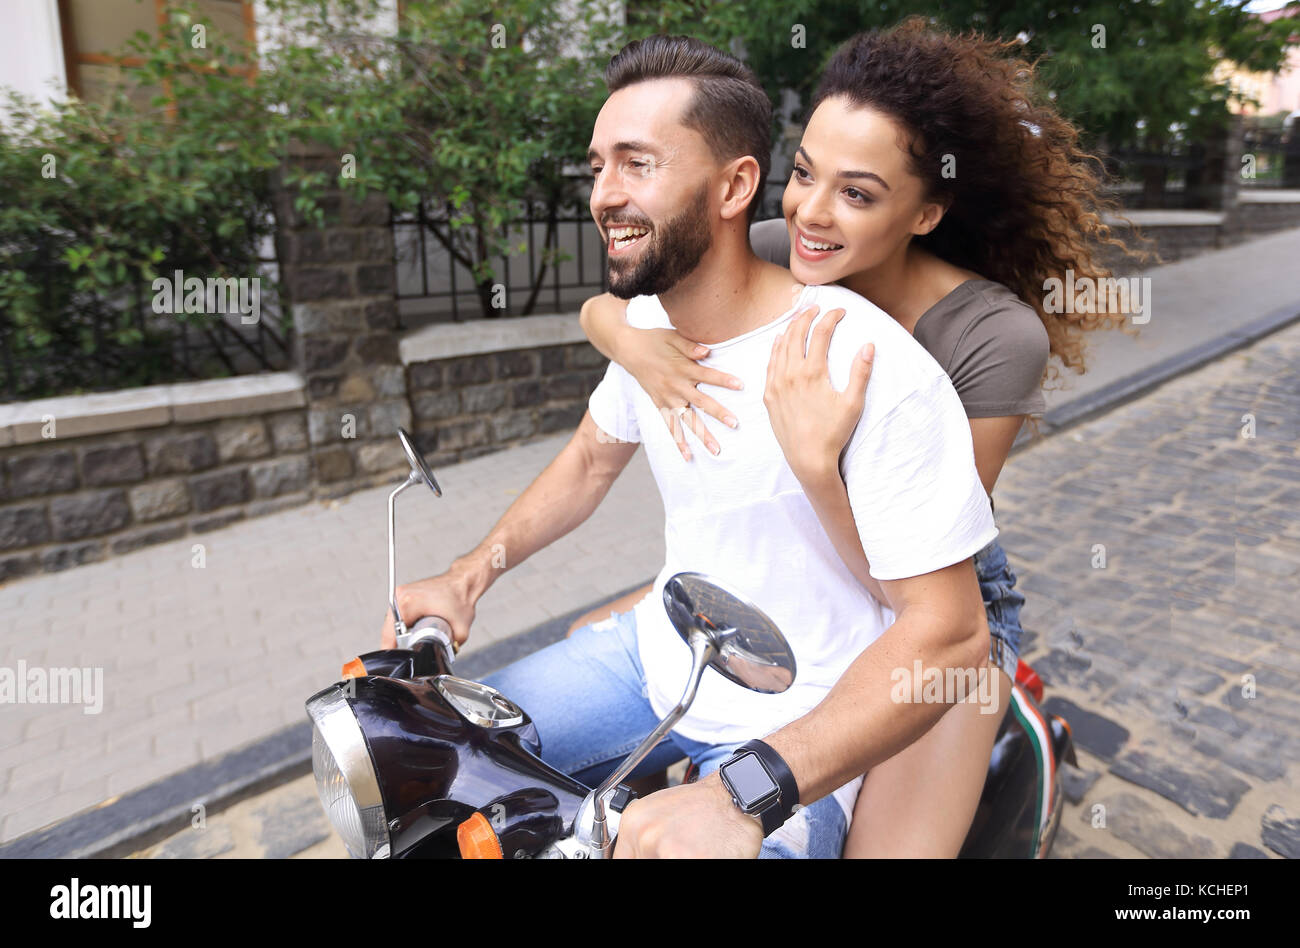 Young couple riding motor scooter in city - Stock Image